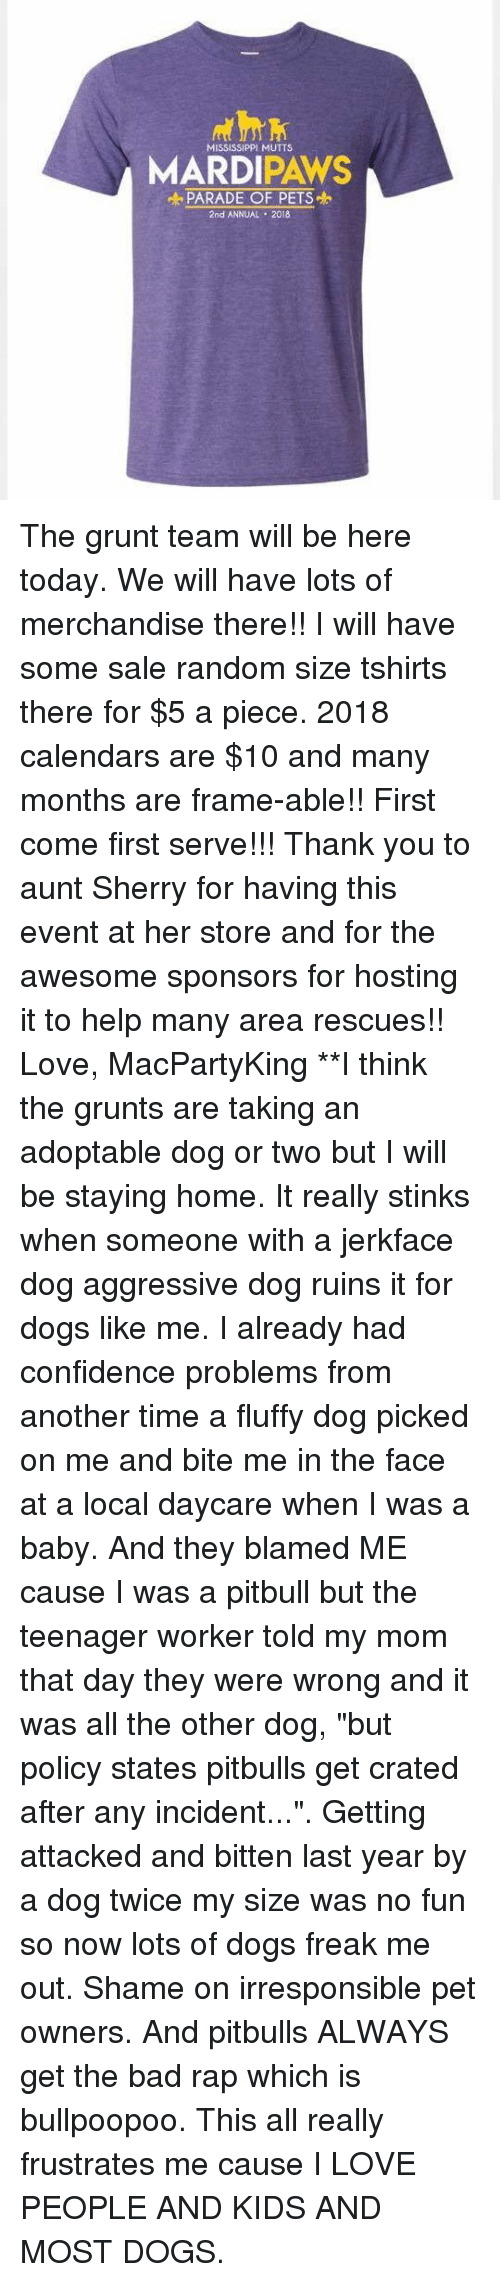 """Bad, Confidence, and Dogs: MISSISSIPPL MUTTS  MARDIPAWS  PARADE OF PETS  2nd ANNUAL 2018 The grunt team will be here today. We will have lots of merchandise there!! I will have some sale random size tshirts there for $5 a piece. 2018 calendars are $10 and many months are frame-able!! First come first serve!!! Thank you to aunt Sherry for having this event at her store and for the awesome sponsors for hosting it to help many area rescues!!   Love, MacPartyKing  **I think the grunts are taking an adoptable dog or two but I will be staying home. It really stinks when someone with a jerkface dog aggressive dog ruins it for dogs like me. I already had confidence problems from another time a fluffy dog picked on me and bite me in the face at a local daycare when I was a baby. And they blamed ME cause I was a pitbull but the teenager worker told my mom that day they were wrong and it was all the other dog, """"but policy states pitbulls get crated after any incident..."""". Getting attacked and bitten last year by a dog twice my size was no fun so now lots of dogs freak me out. Shame on irresponsible pet owners. And pitbulls ALWAYS get the bad rap which is bullpoopoo. This all really frustrates me cause I LOVE PEOPLE AND KIDS AND MOST DOGS."""